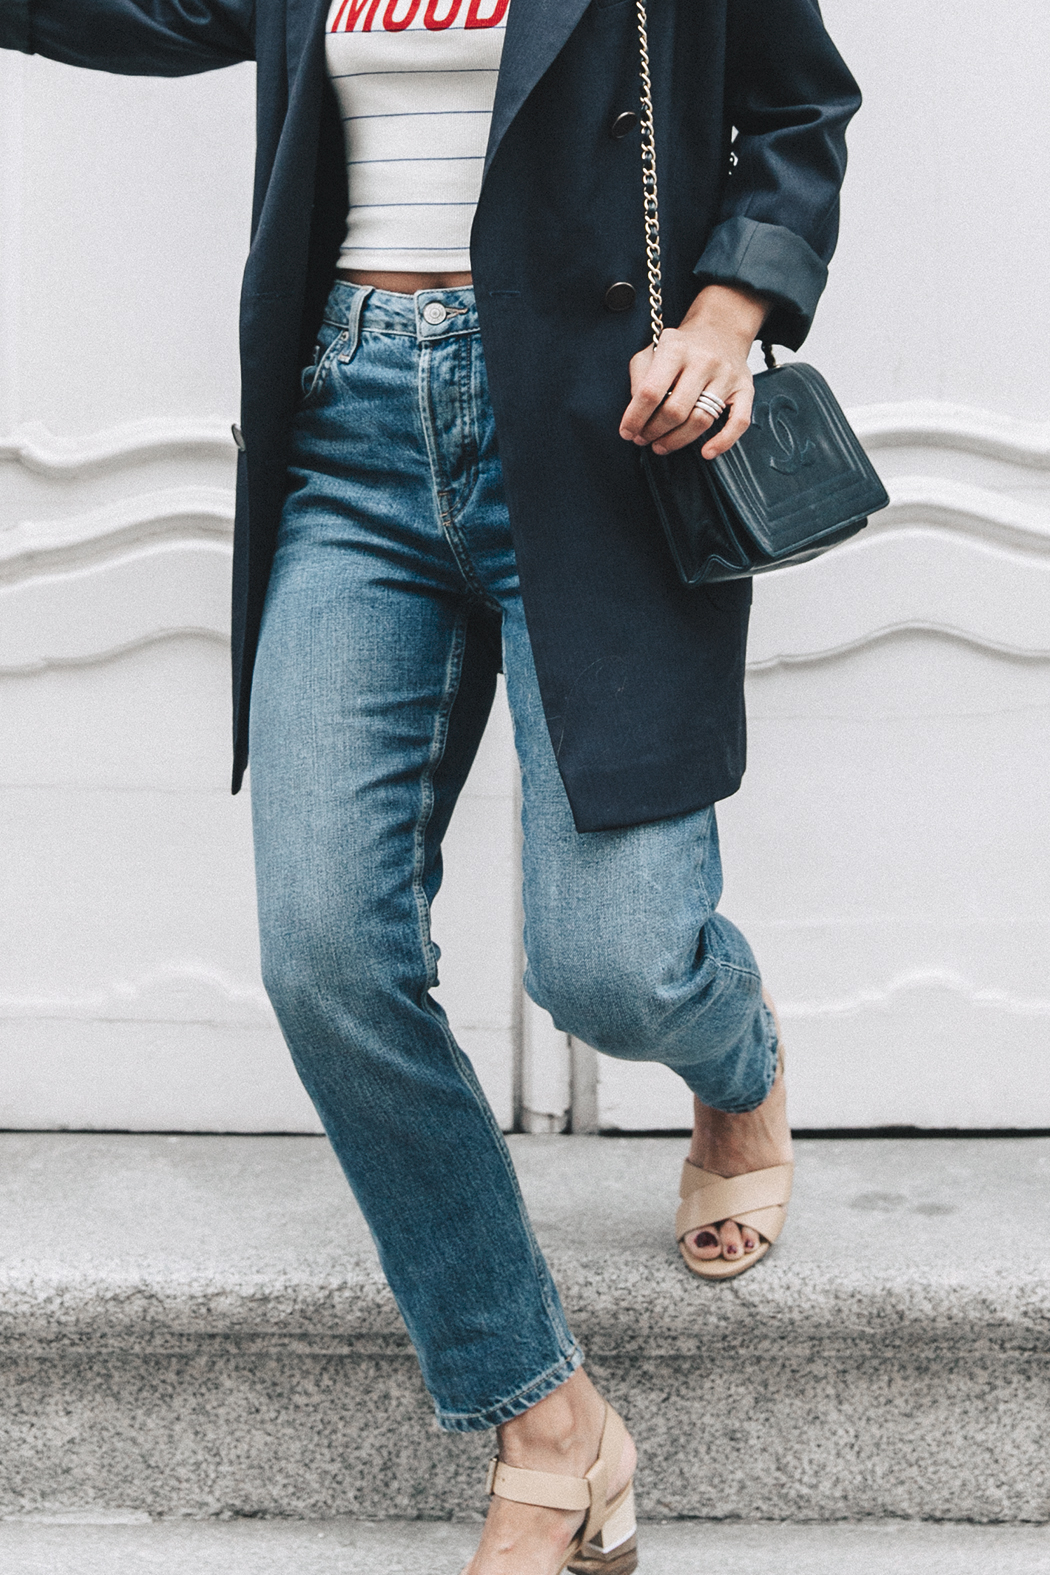 Current_Mood_Striped_Top-Denim_Jeans-Topshop-Dune_Sandals-Outfit-Street_Style-Collage_Vintage-24